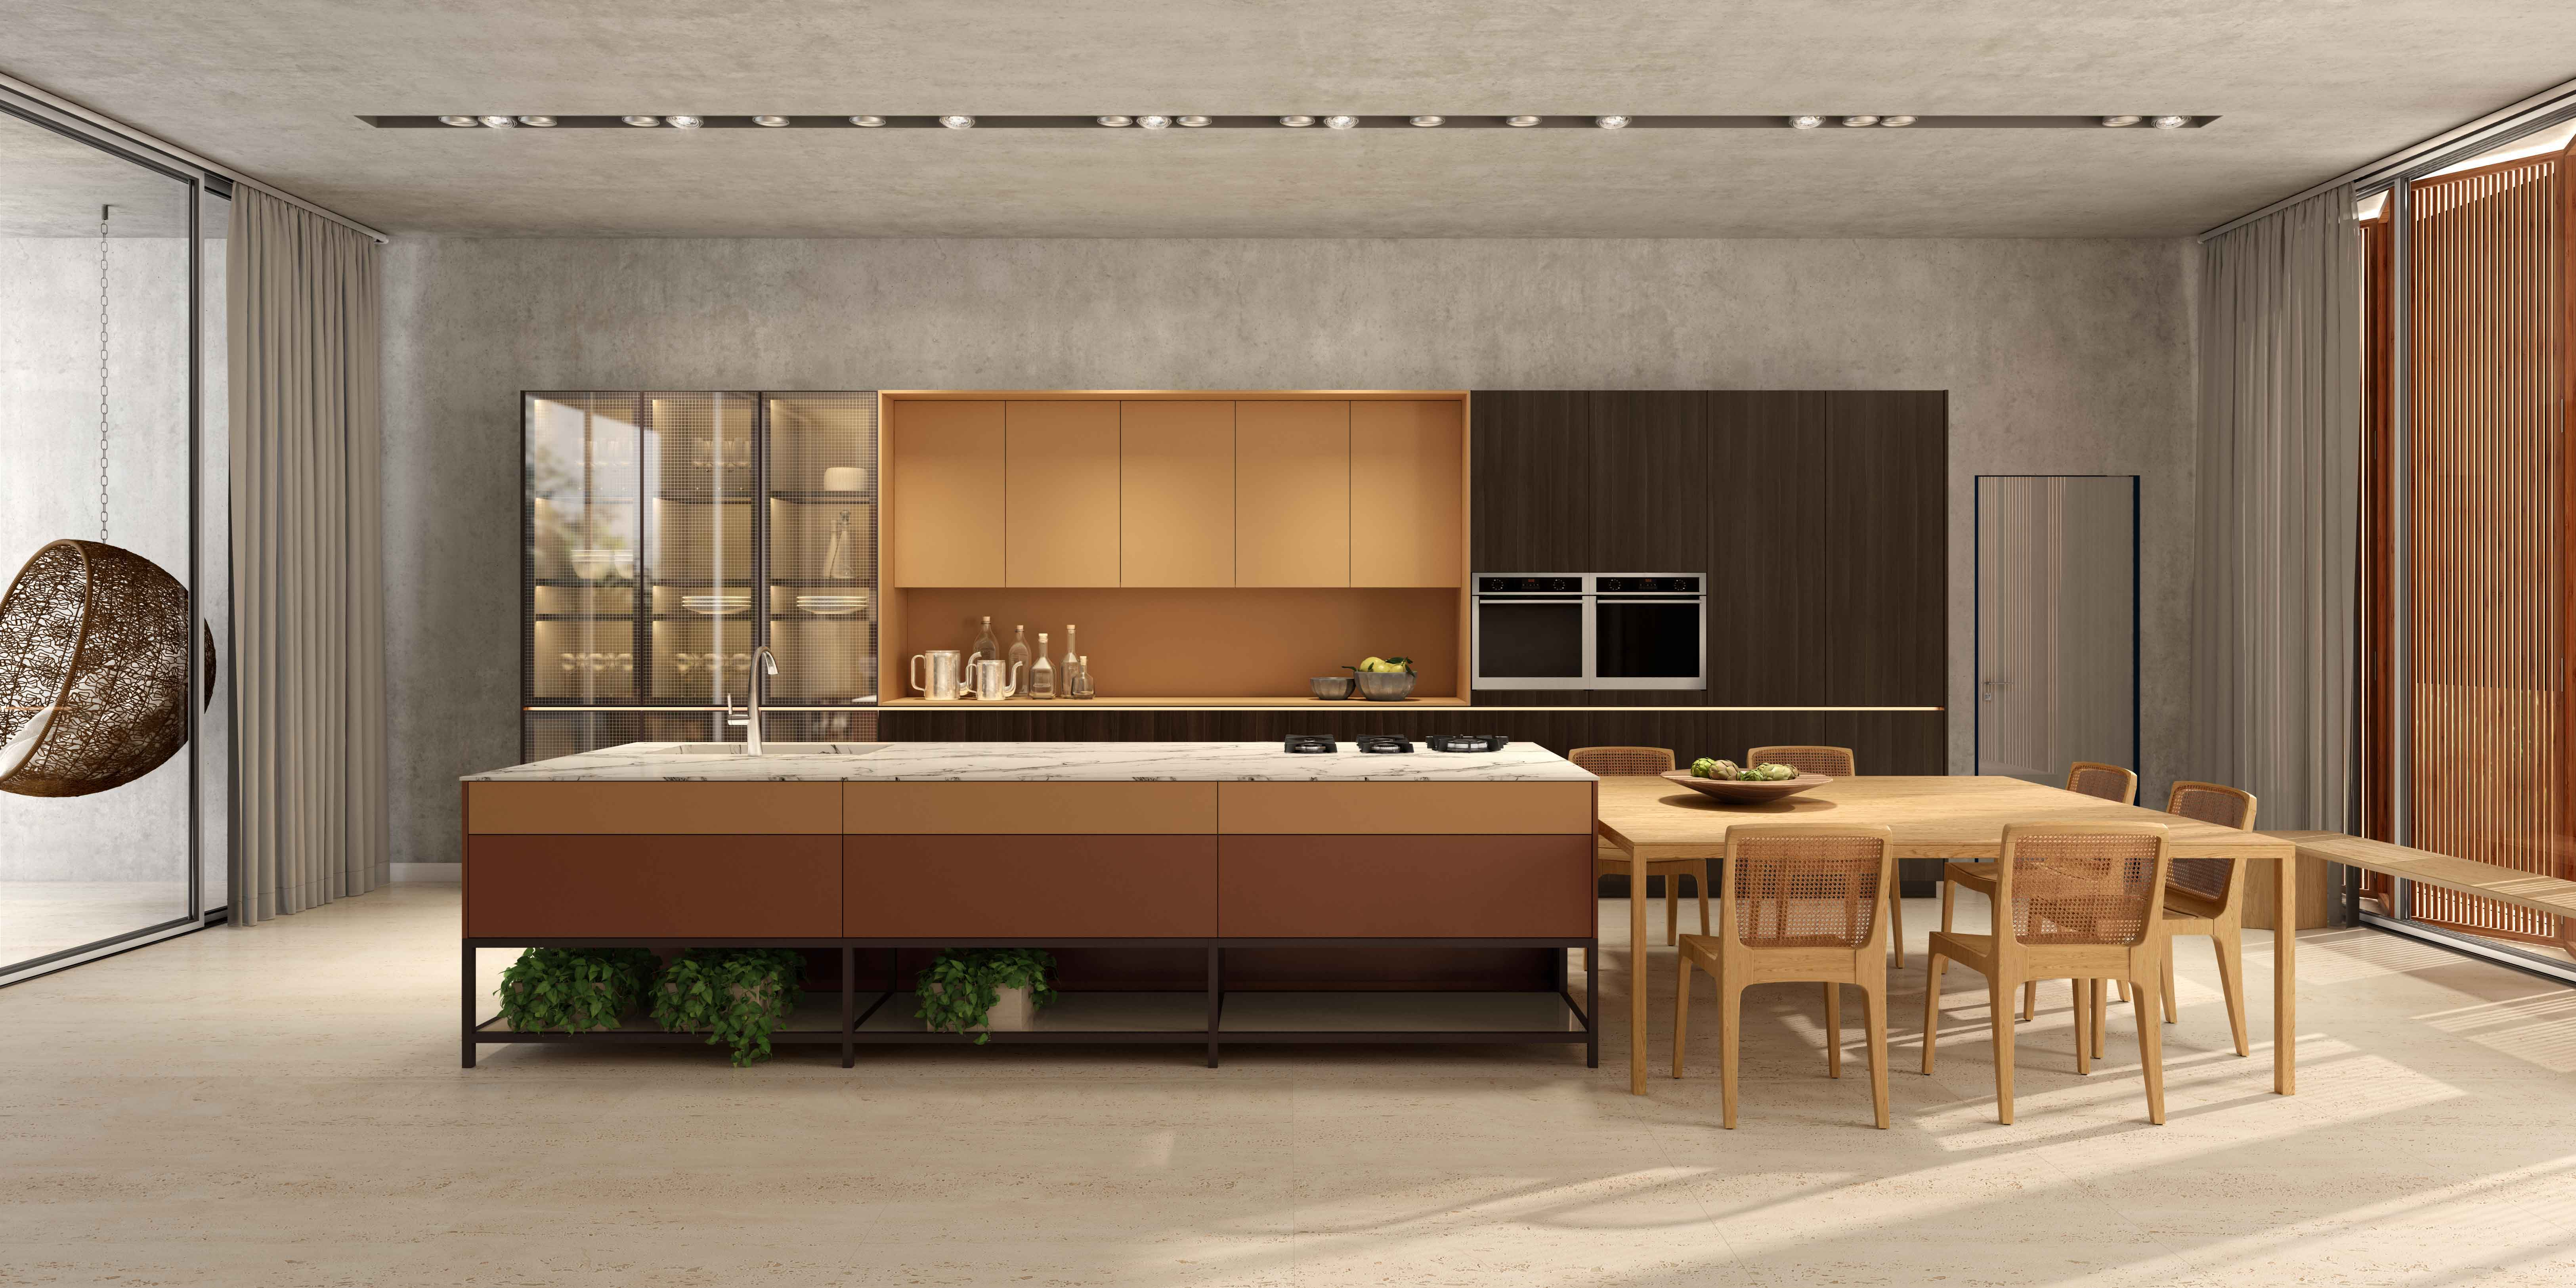 Dell Anno's Kitchen is a Perfect Blend Of Modern And Impeccable Quality Kitchens. Tailor-Made Kitchens For Homes With Highly Architectonical.